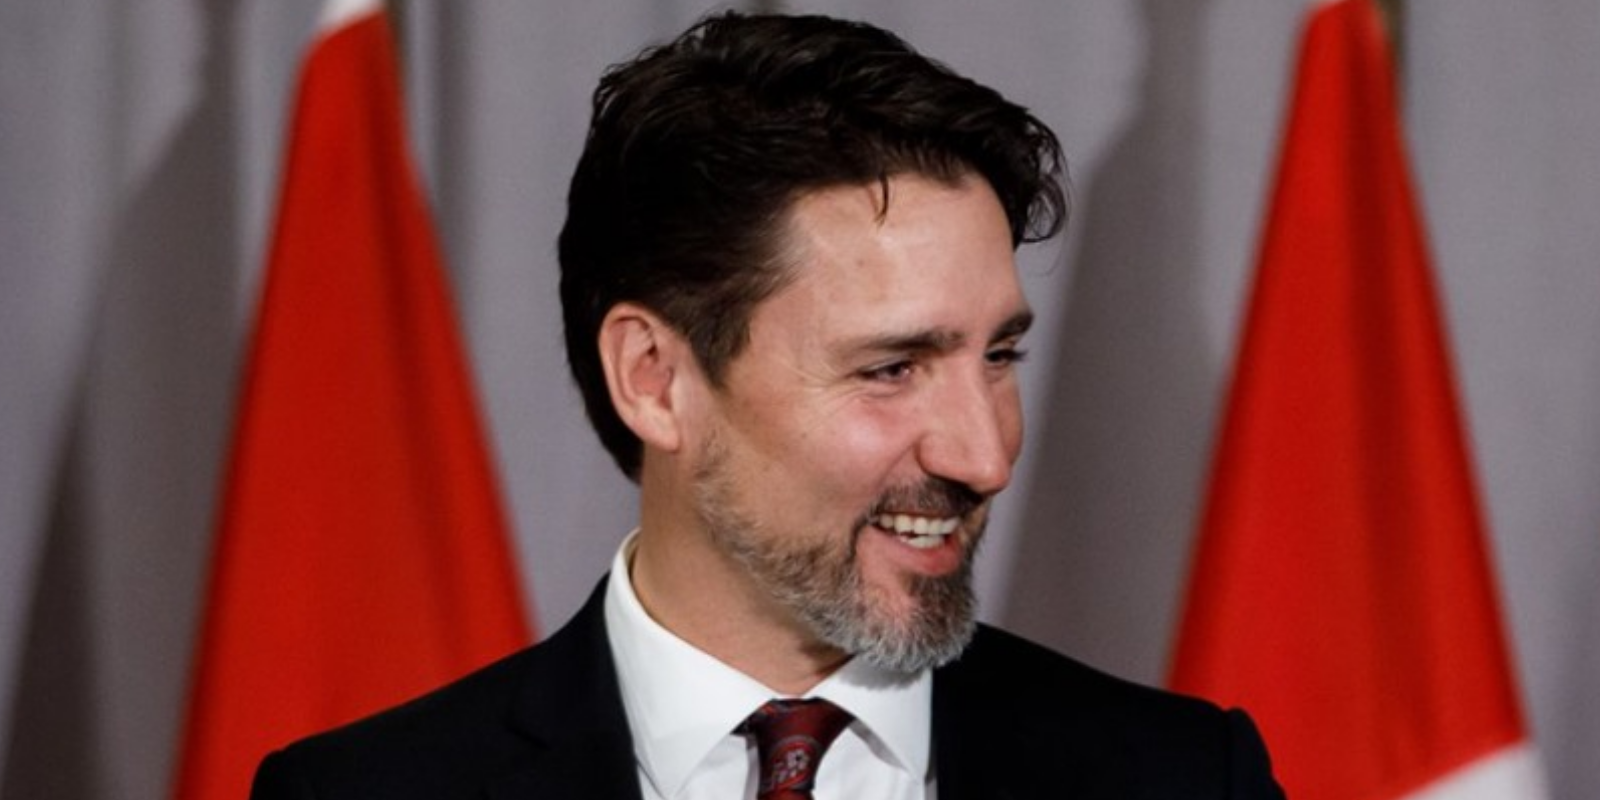 Trudeau government borrowed over $500 BILLION in just 120 days